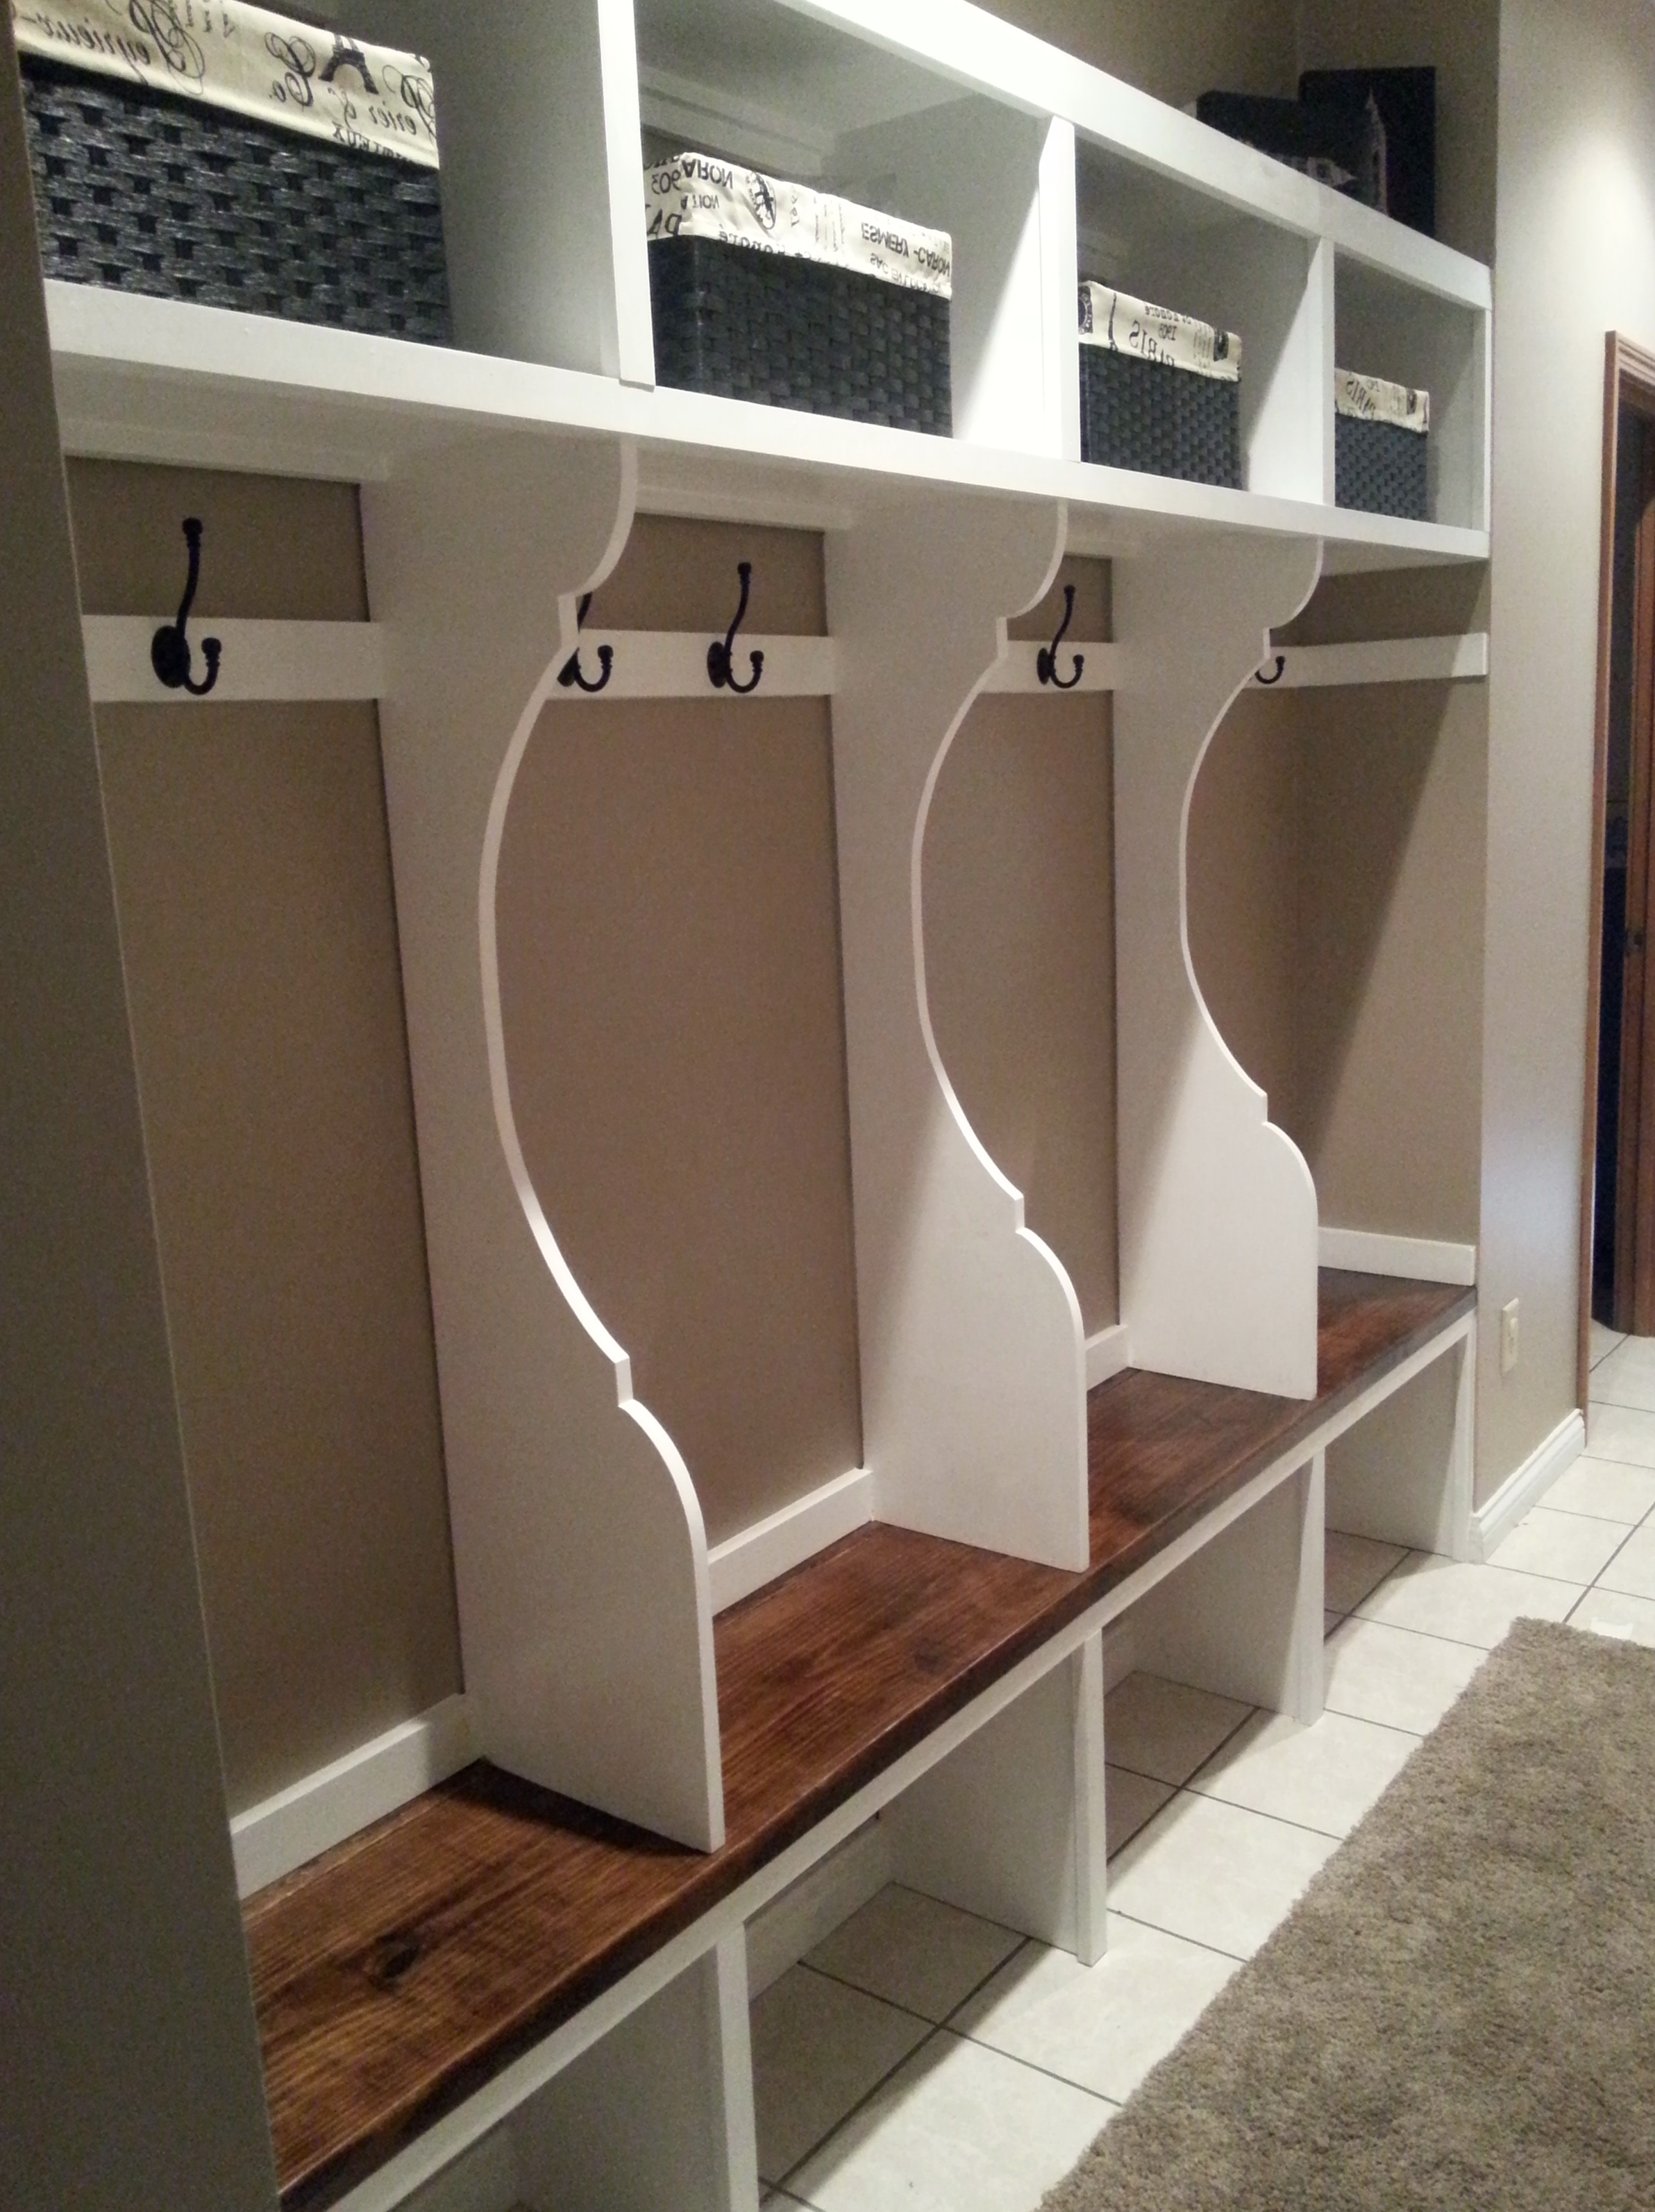 Mudroom Storage Lockers For Sale : Mudroom lockers with bench for sale home design ideas